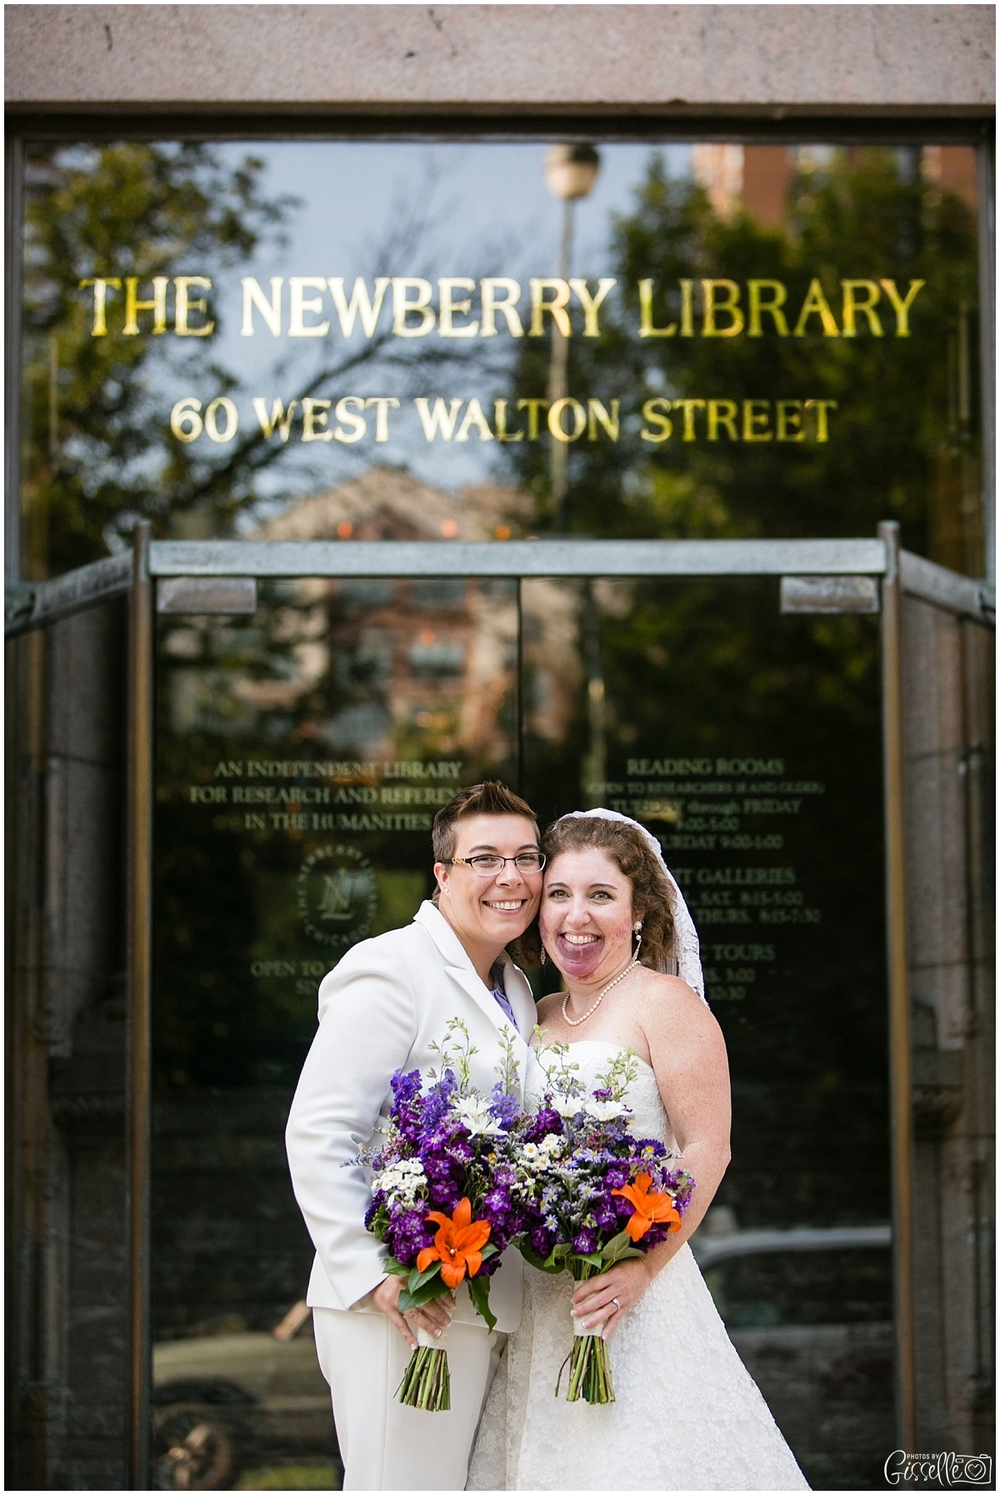 Newberry_Library_Wedding032.jpg